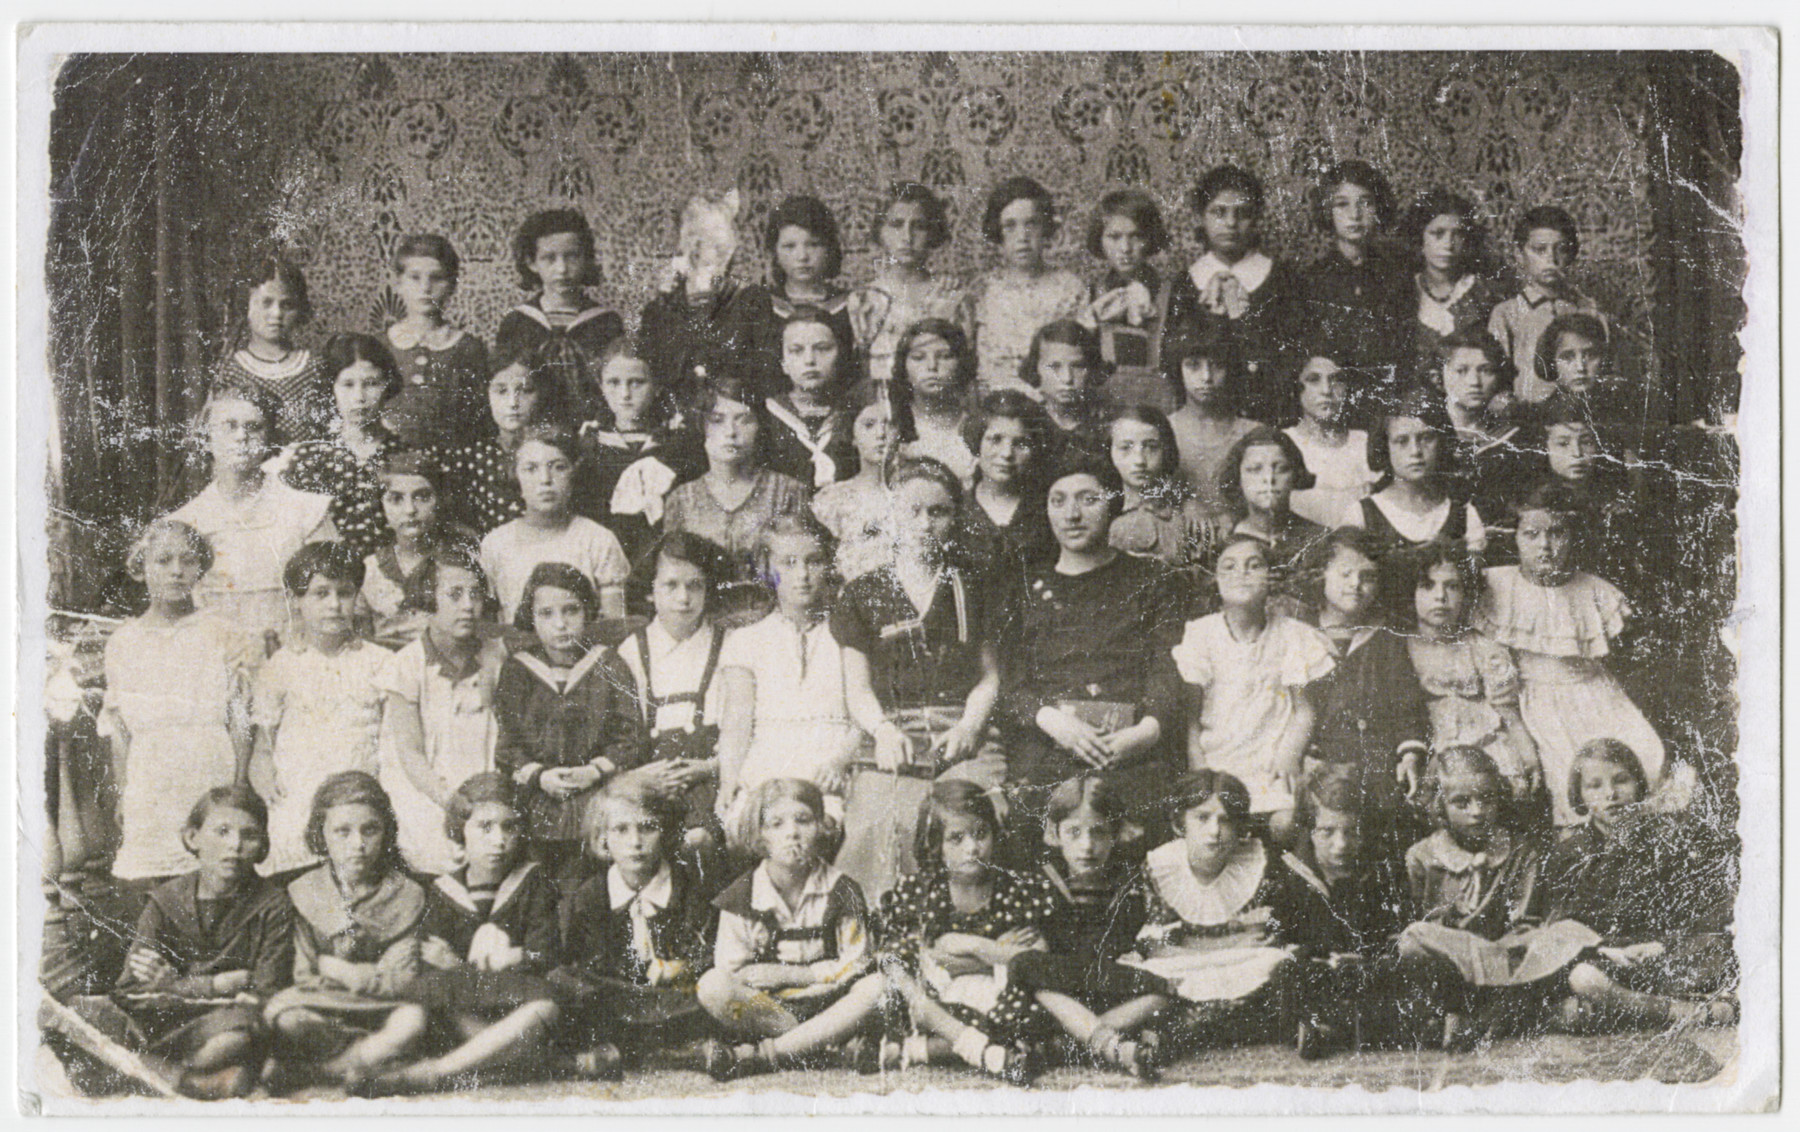 Group portrait of young school children in Simleu-Silvaniei.  Among those pictured is Elly Berkovits.